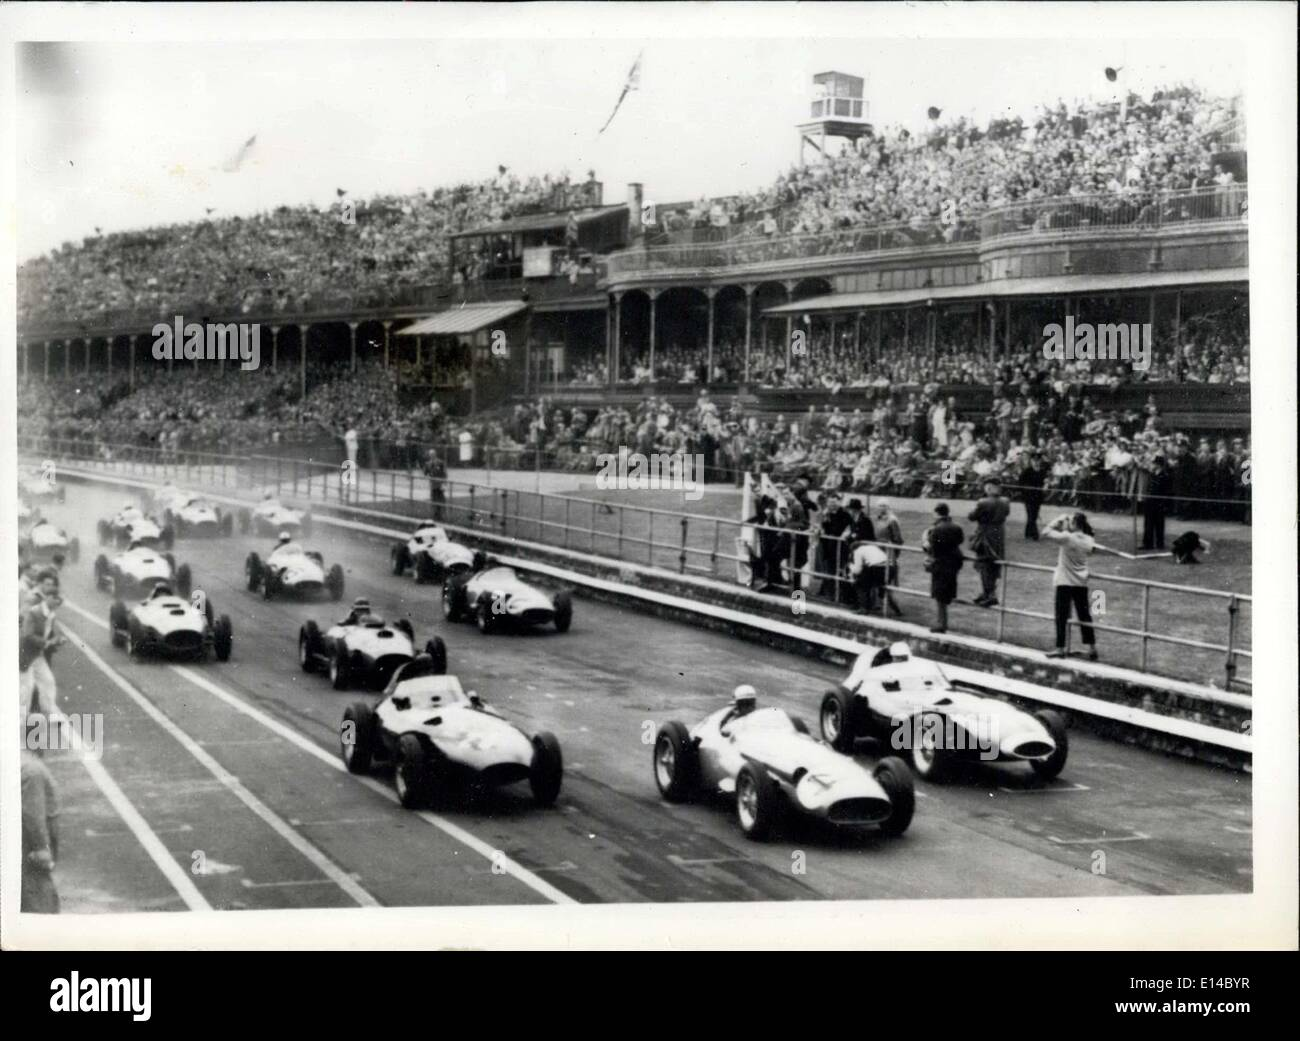 Apr. 17, 2012 - British and European Grand Prix at Aintree. Photo shows the scene as the cars move off for the start of the race today. - Stock Image